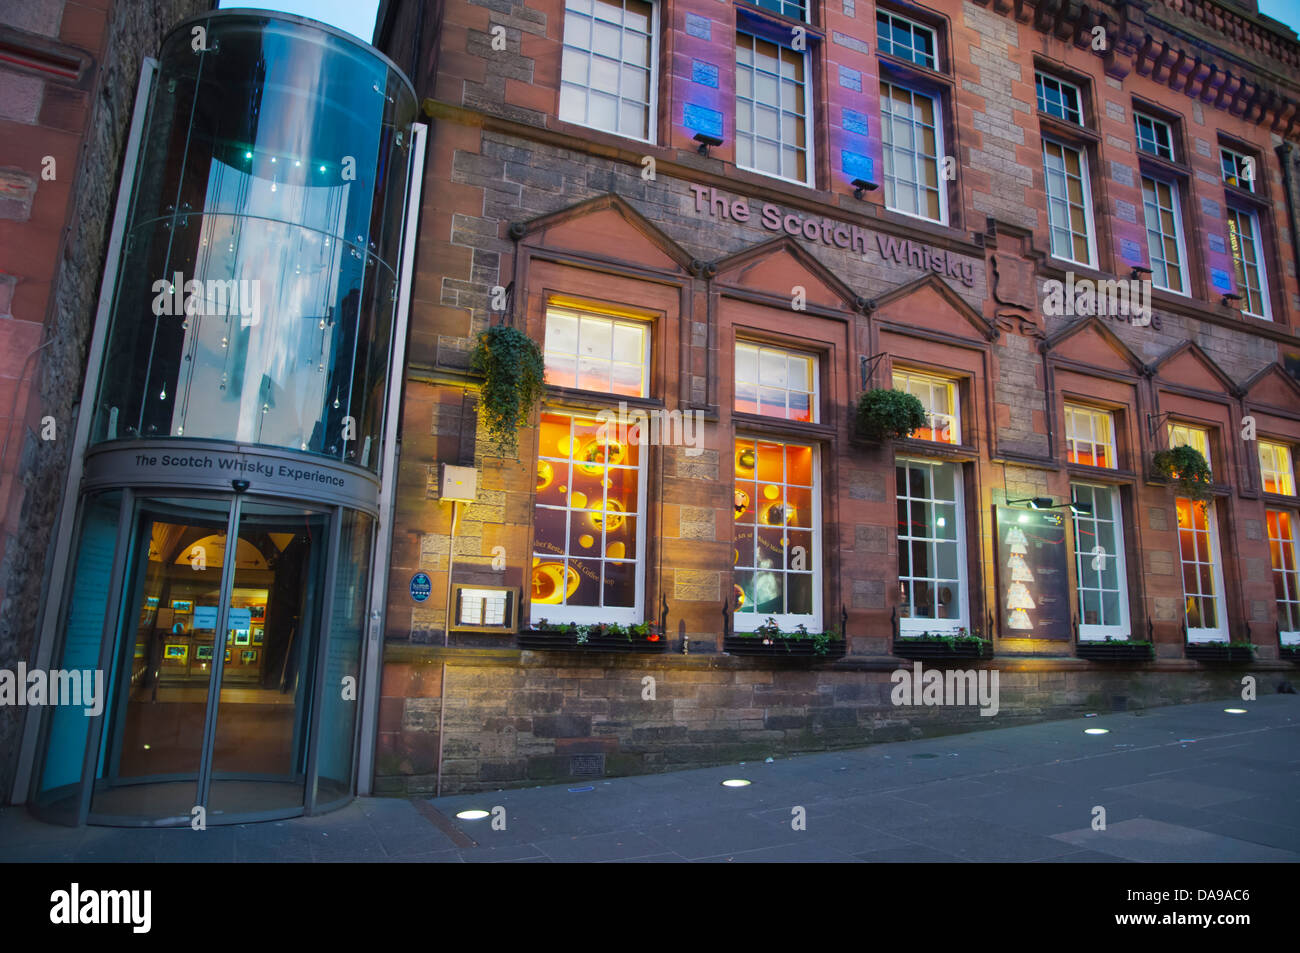 The Scotch Whisky Experience building Castlehill old town Edinburgh Scotland Britain UK Europe - Stock Image